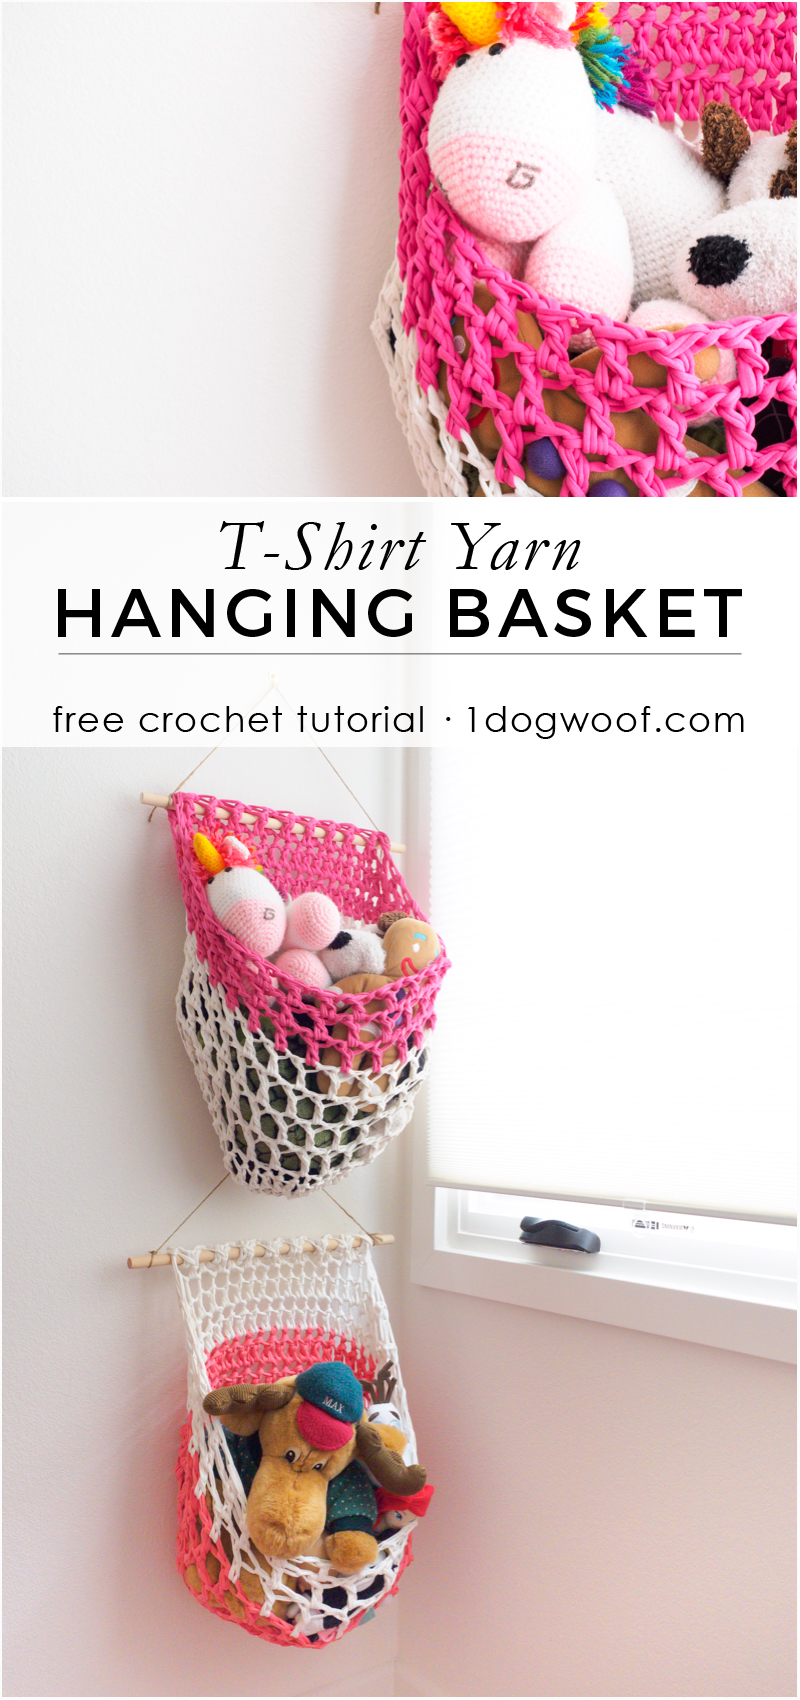 Make a loose mesh fabric yarn or t-shirt yarn hanging basket with this free crochet pattern from 1dogwoof.com